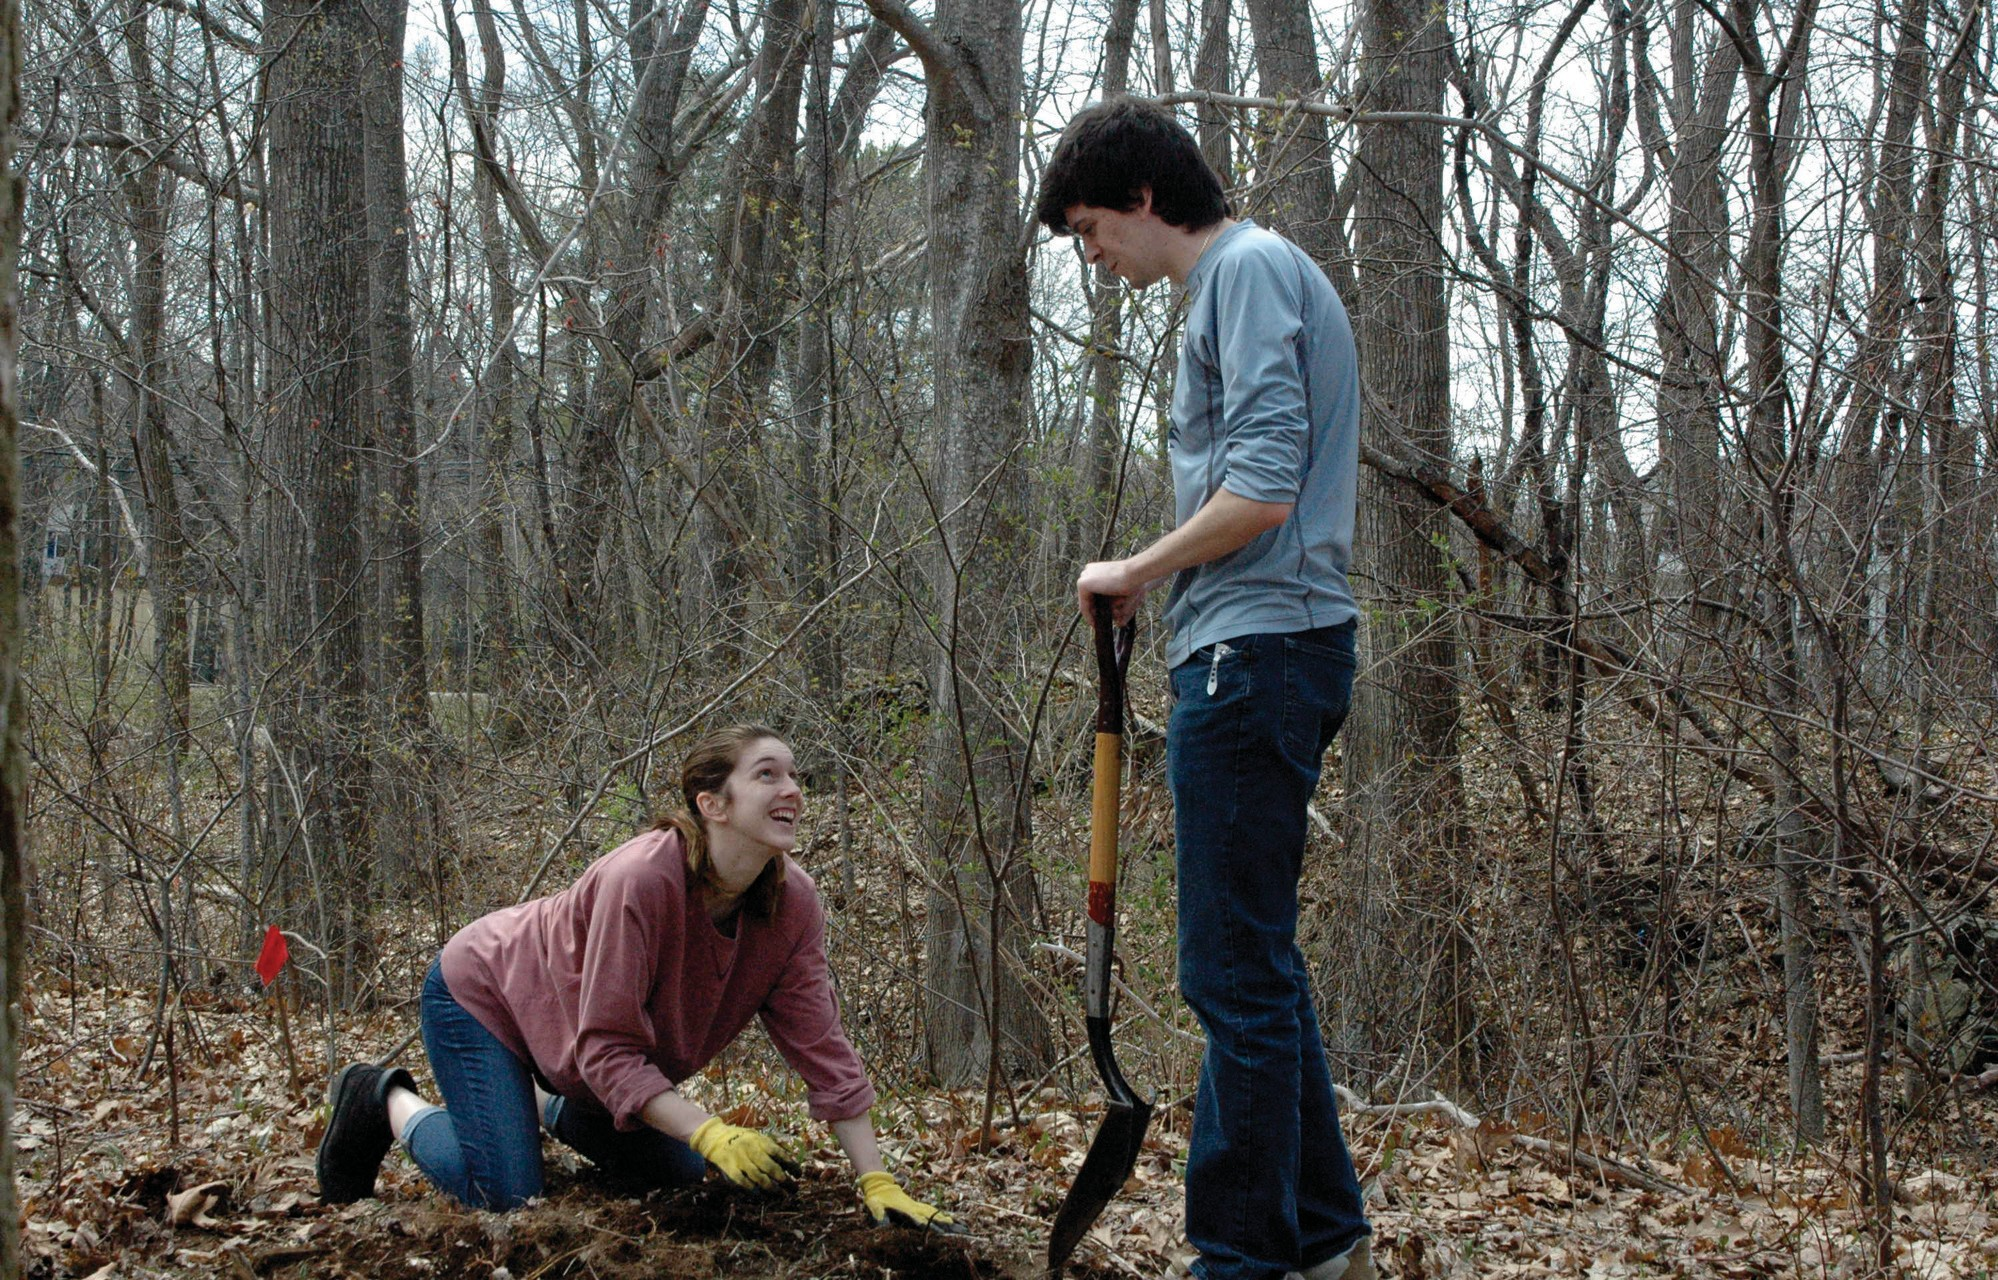 University of New England students Nicole Belknap and Ryan Roseen dig a hole in the dirt on the Biddeford campus on Friday afternoon during an American chestnut tree planting project in celebration of Earth Day.